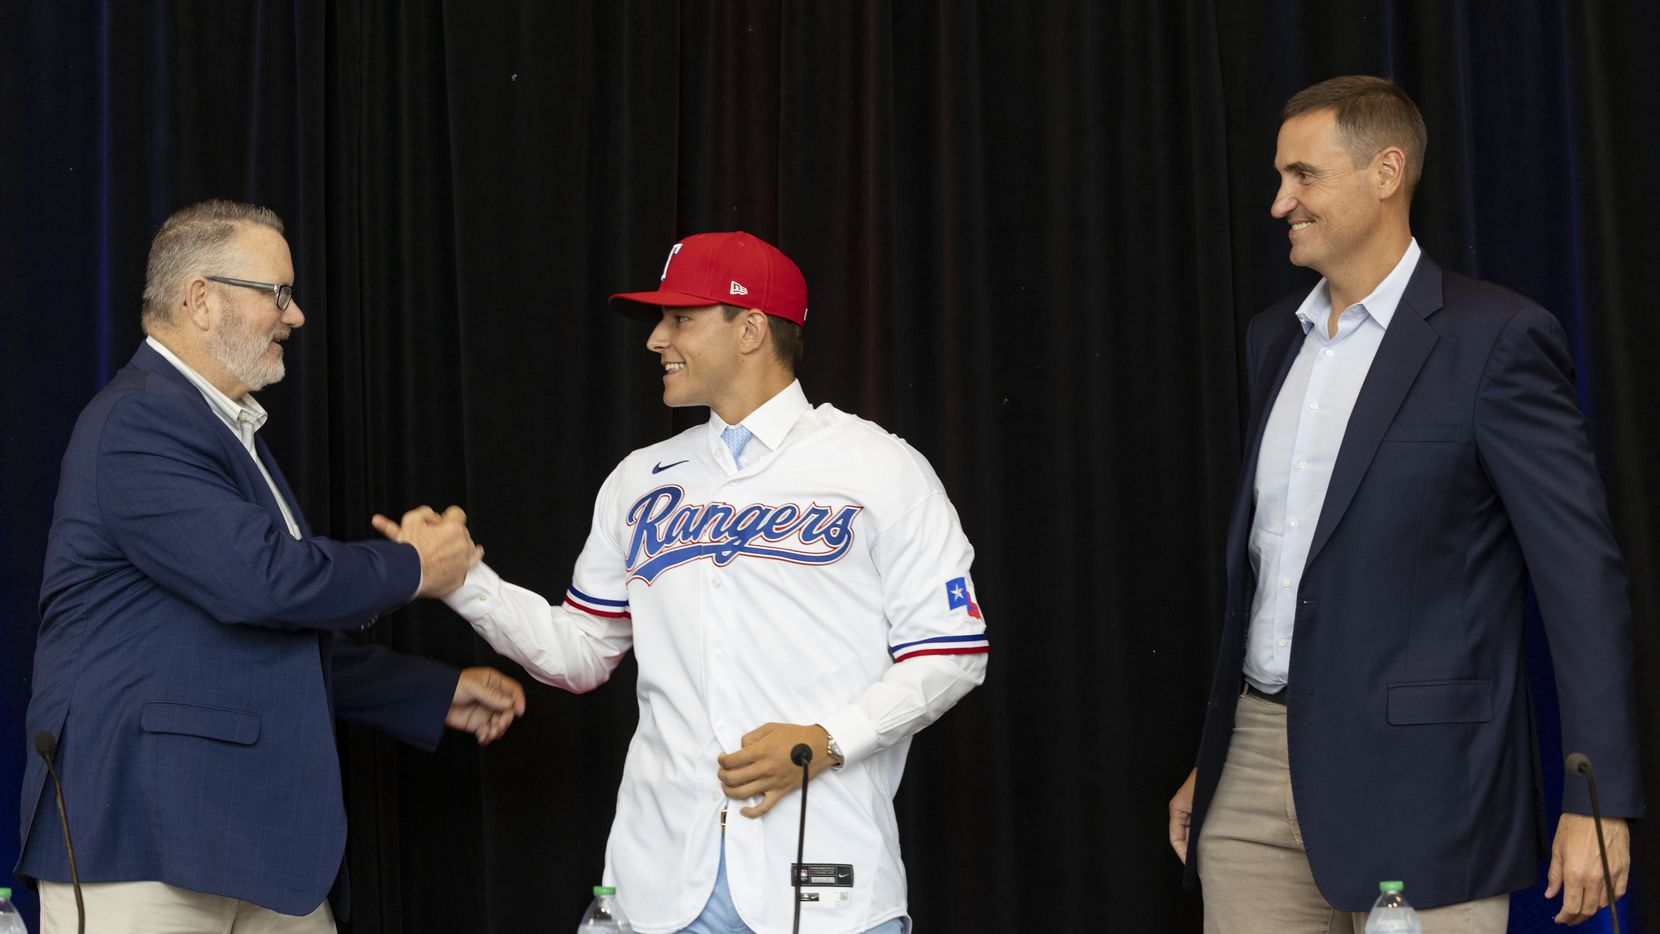 Kip Fagg (left), Texas Rangers Senior Director of Amateur Scouting, Chris Young (right), Rangers Executive Vice President and General Manager, congratulate Jack Leiter from Vanderbilt University after putting on his Texas Rangers jersey following the announcement of his signing on Tuesday, July 27, 2021, at Globe Life Field in Arlington. Leiter was the club's 2021 MLB Draft first round selection and the draft's second overall pick.